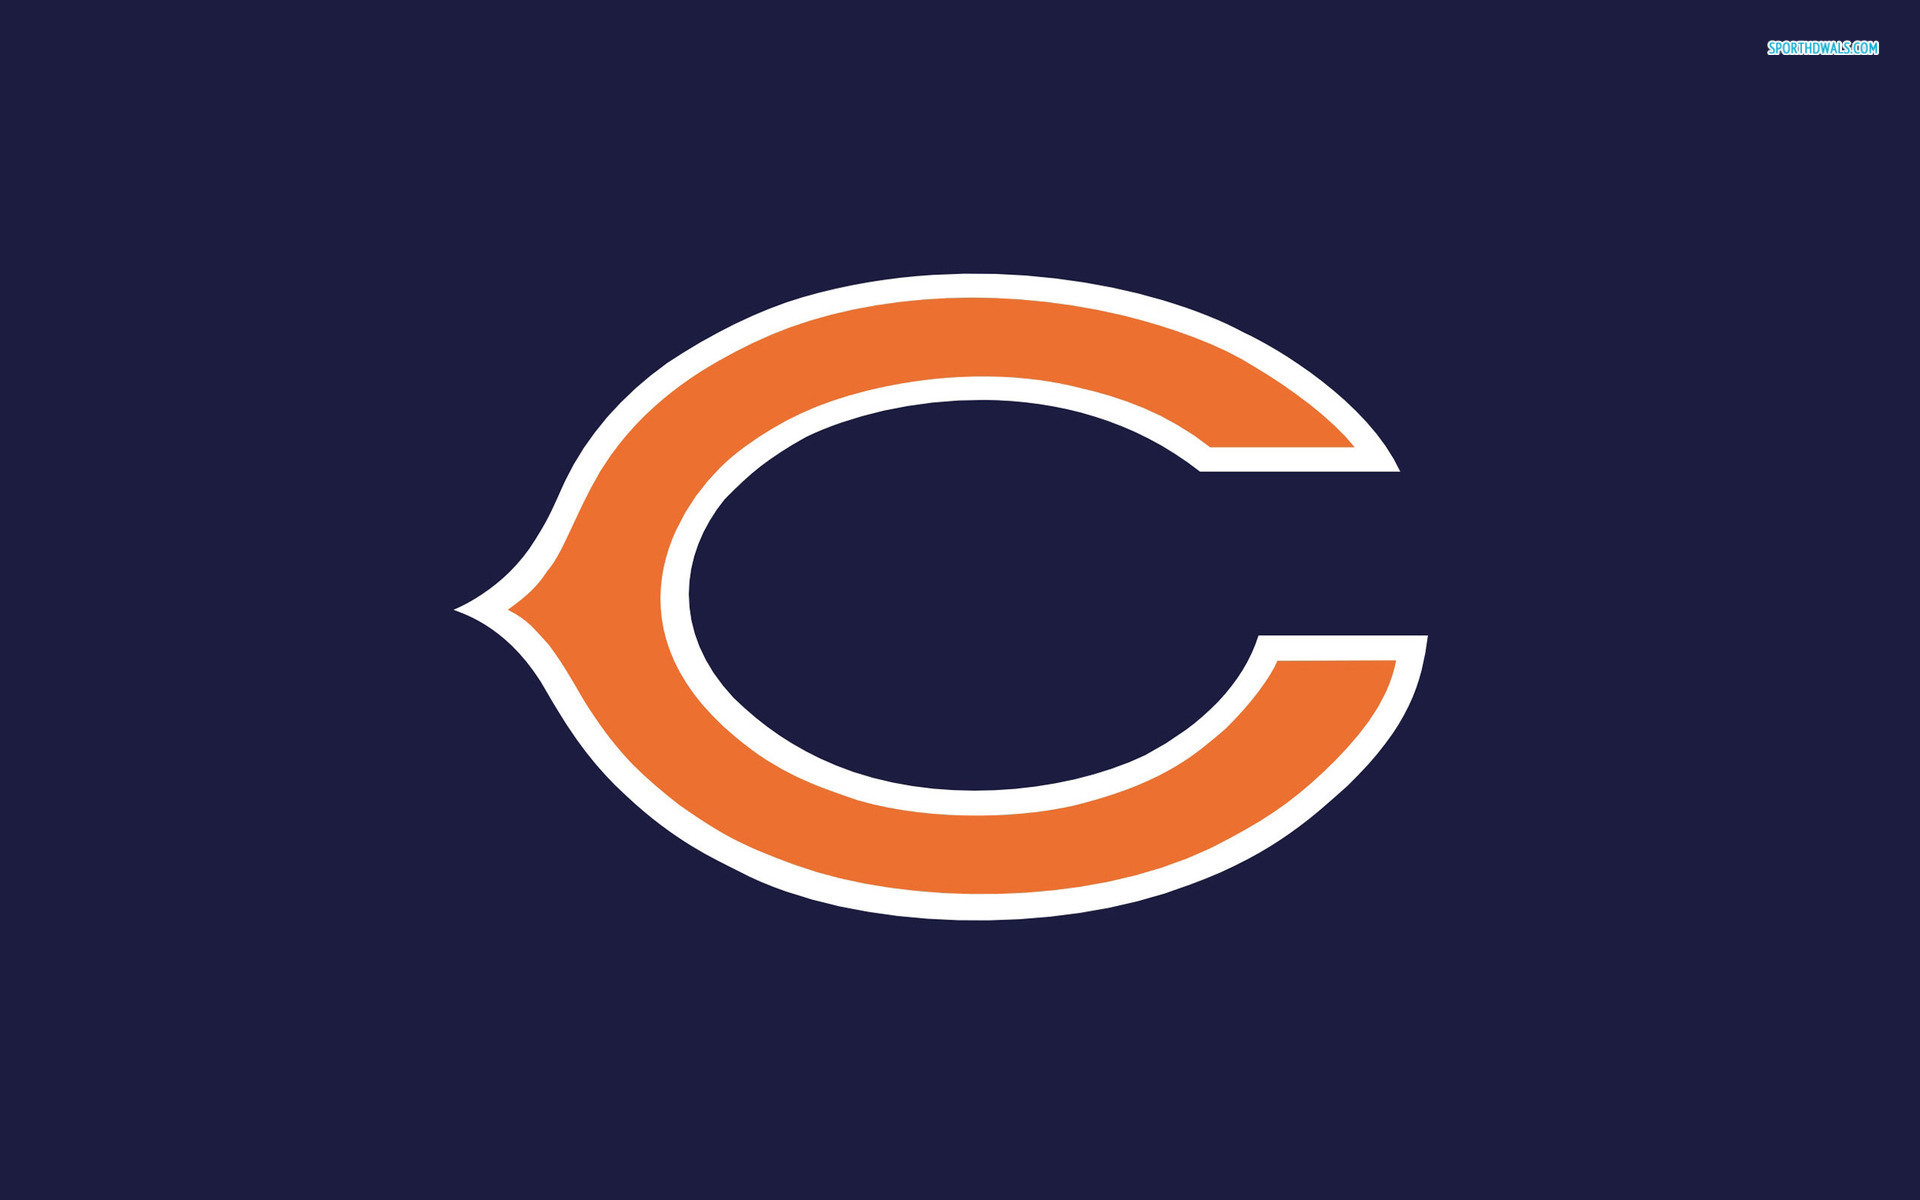 Chicago Bears Wallpapers 2015 1920x1200